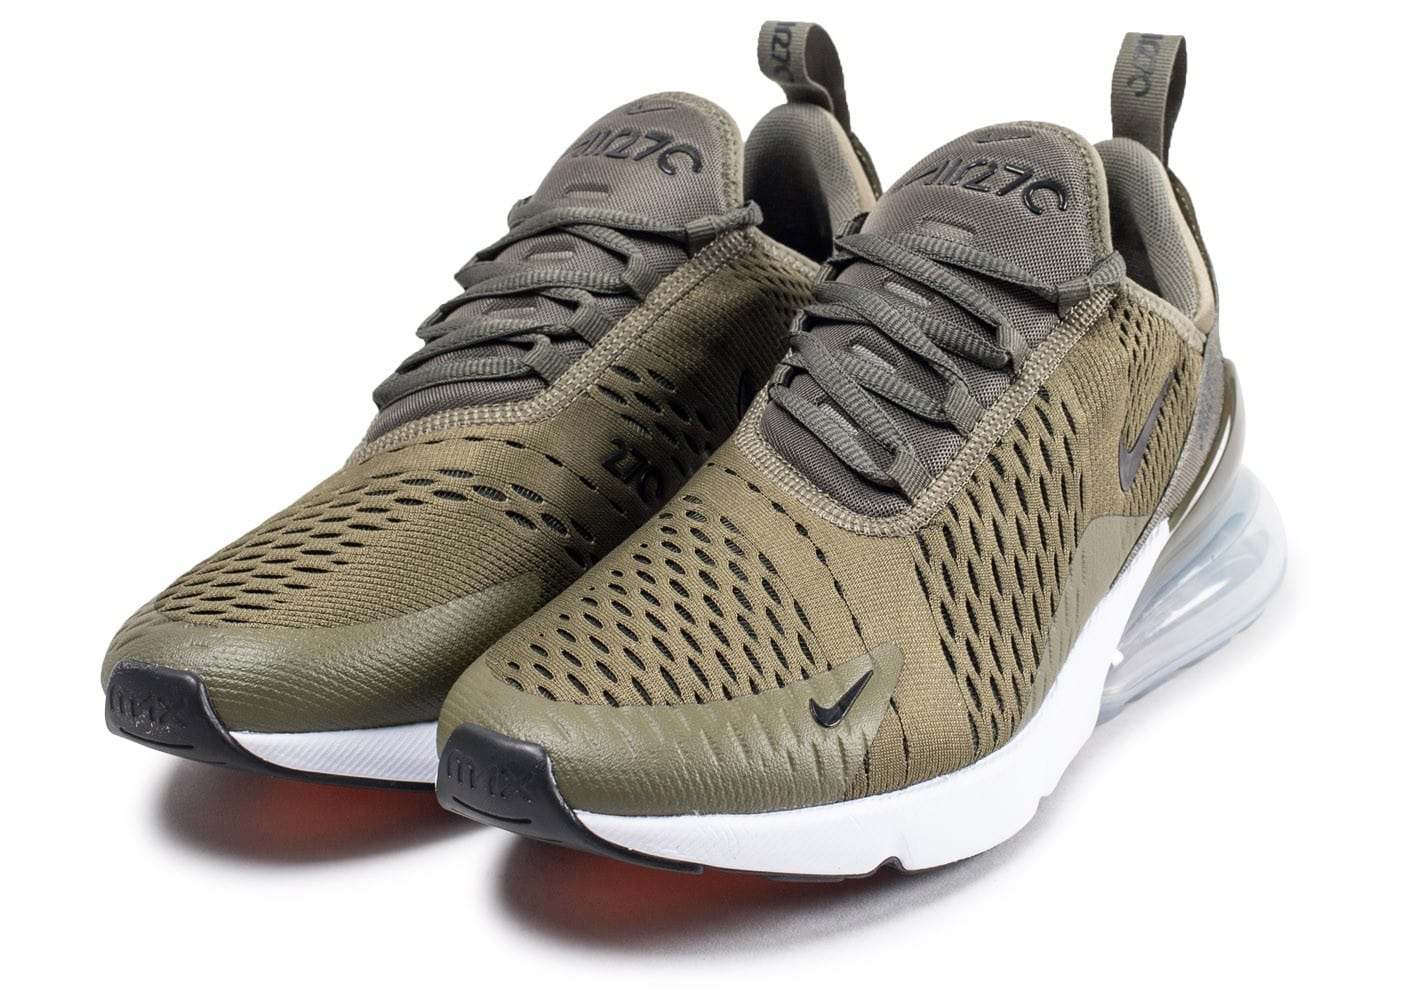 nike air max 270 medium olive chaussures homme chausport. Black Bedroom Furniture Sets. Home Design Ideas